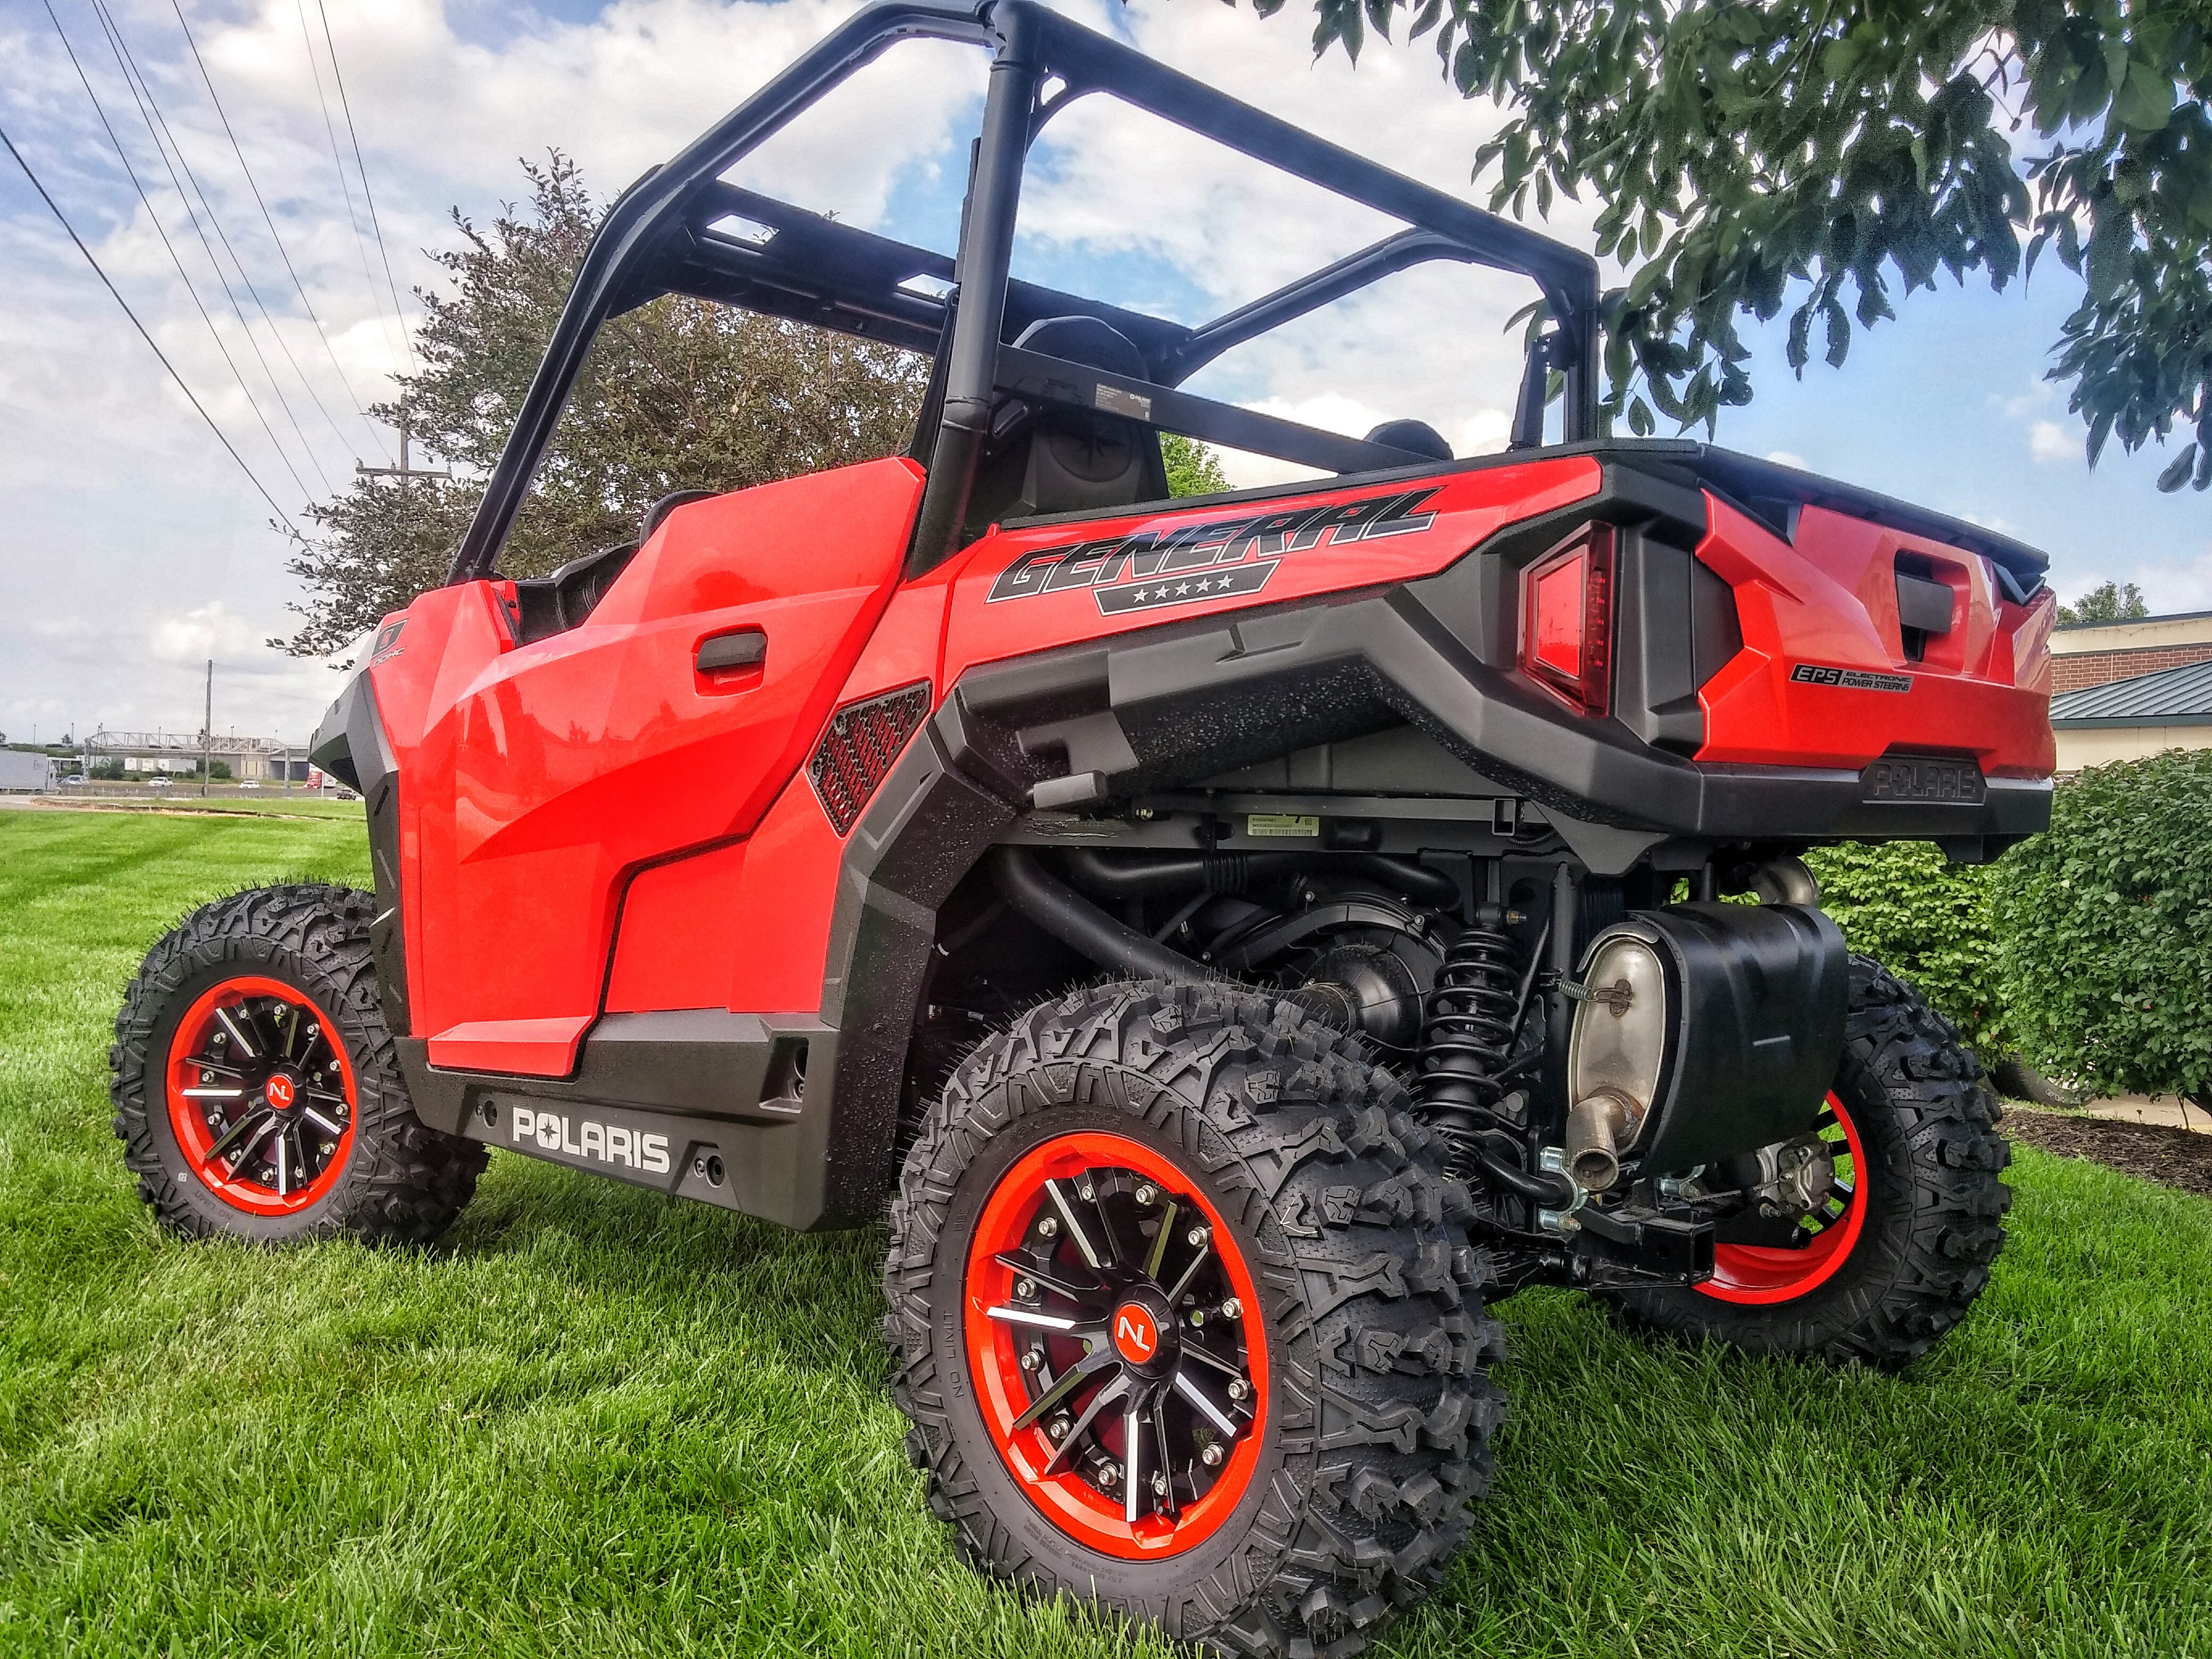 15 Inch No Limit Storm 2 Piece Atv Utv Wheels Red Matches Best With